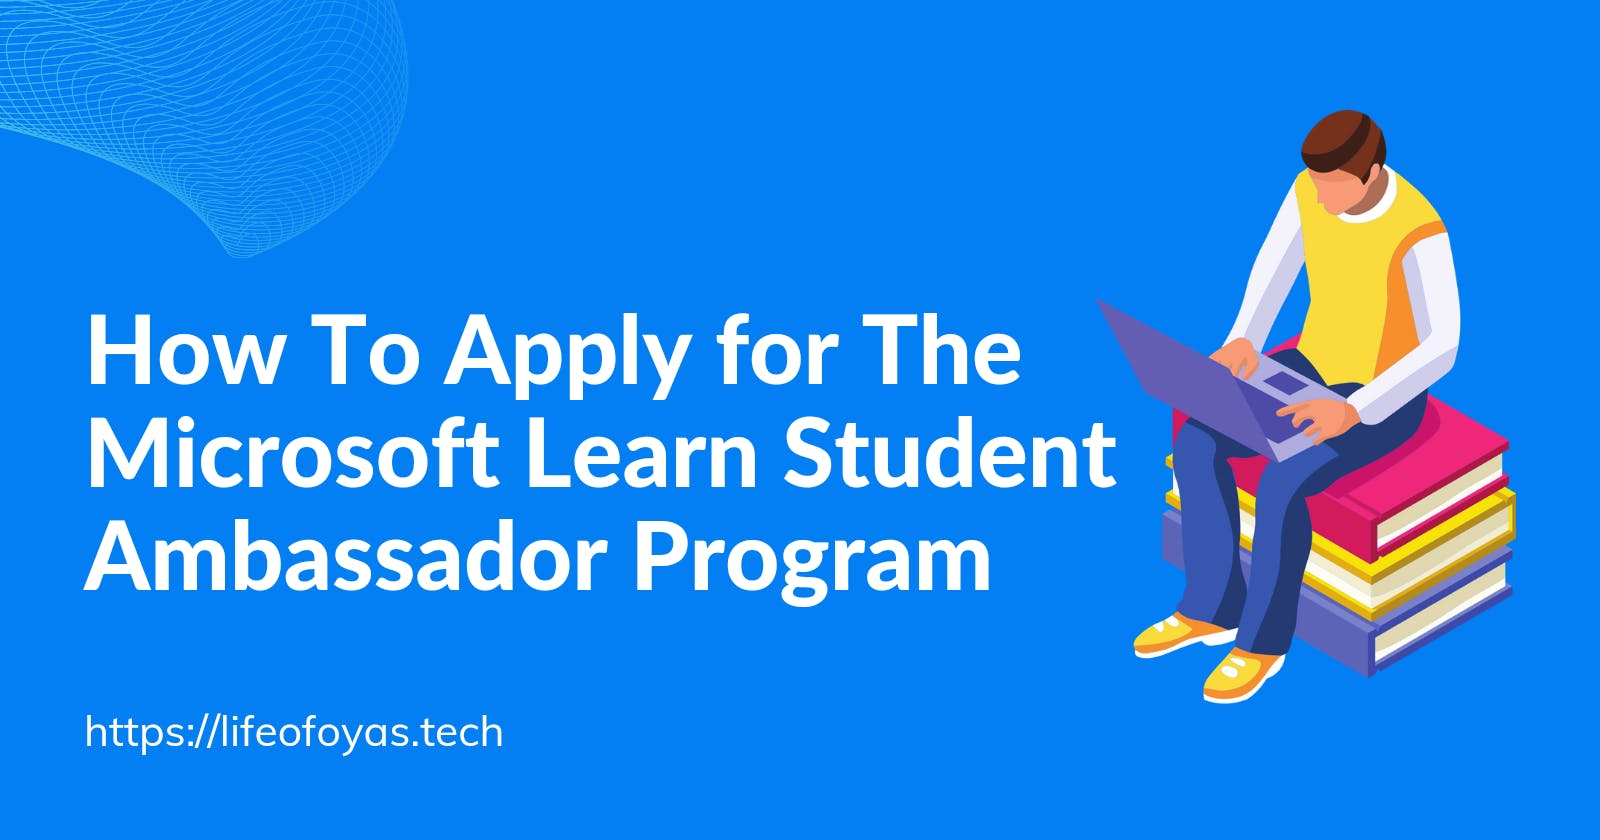 How To Apply For The Microsoft Learn Student Ambassador Program